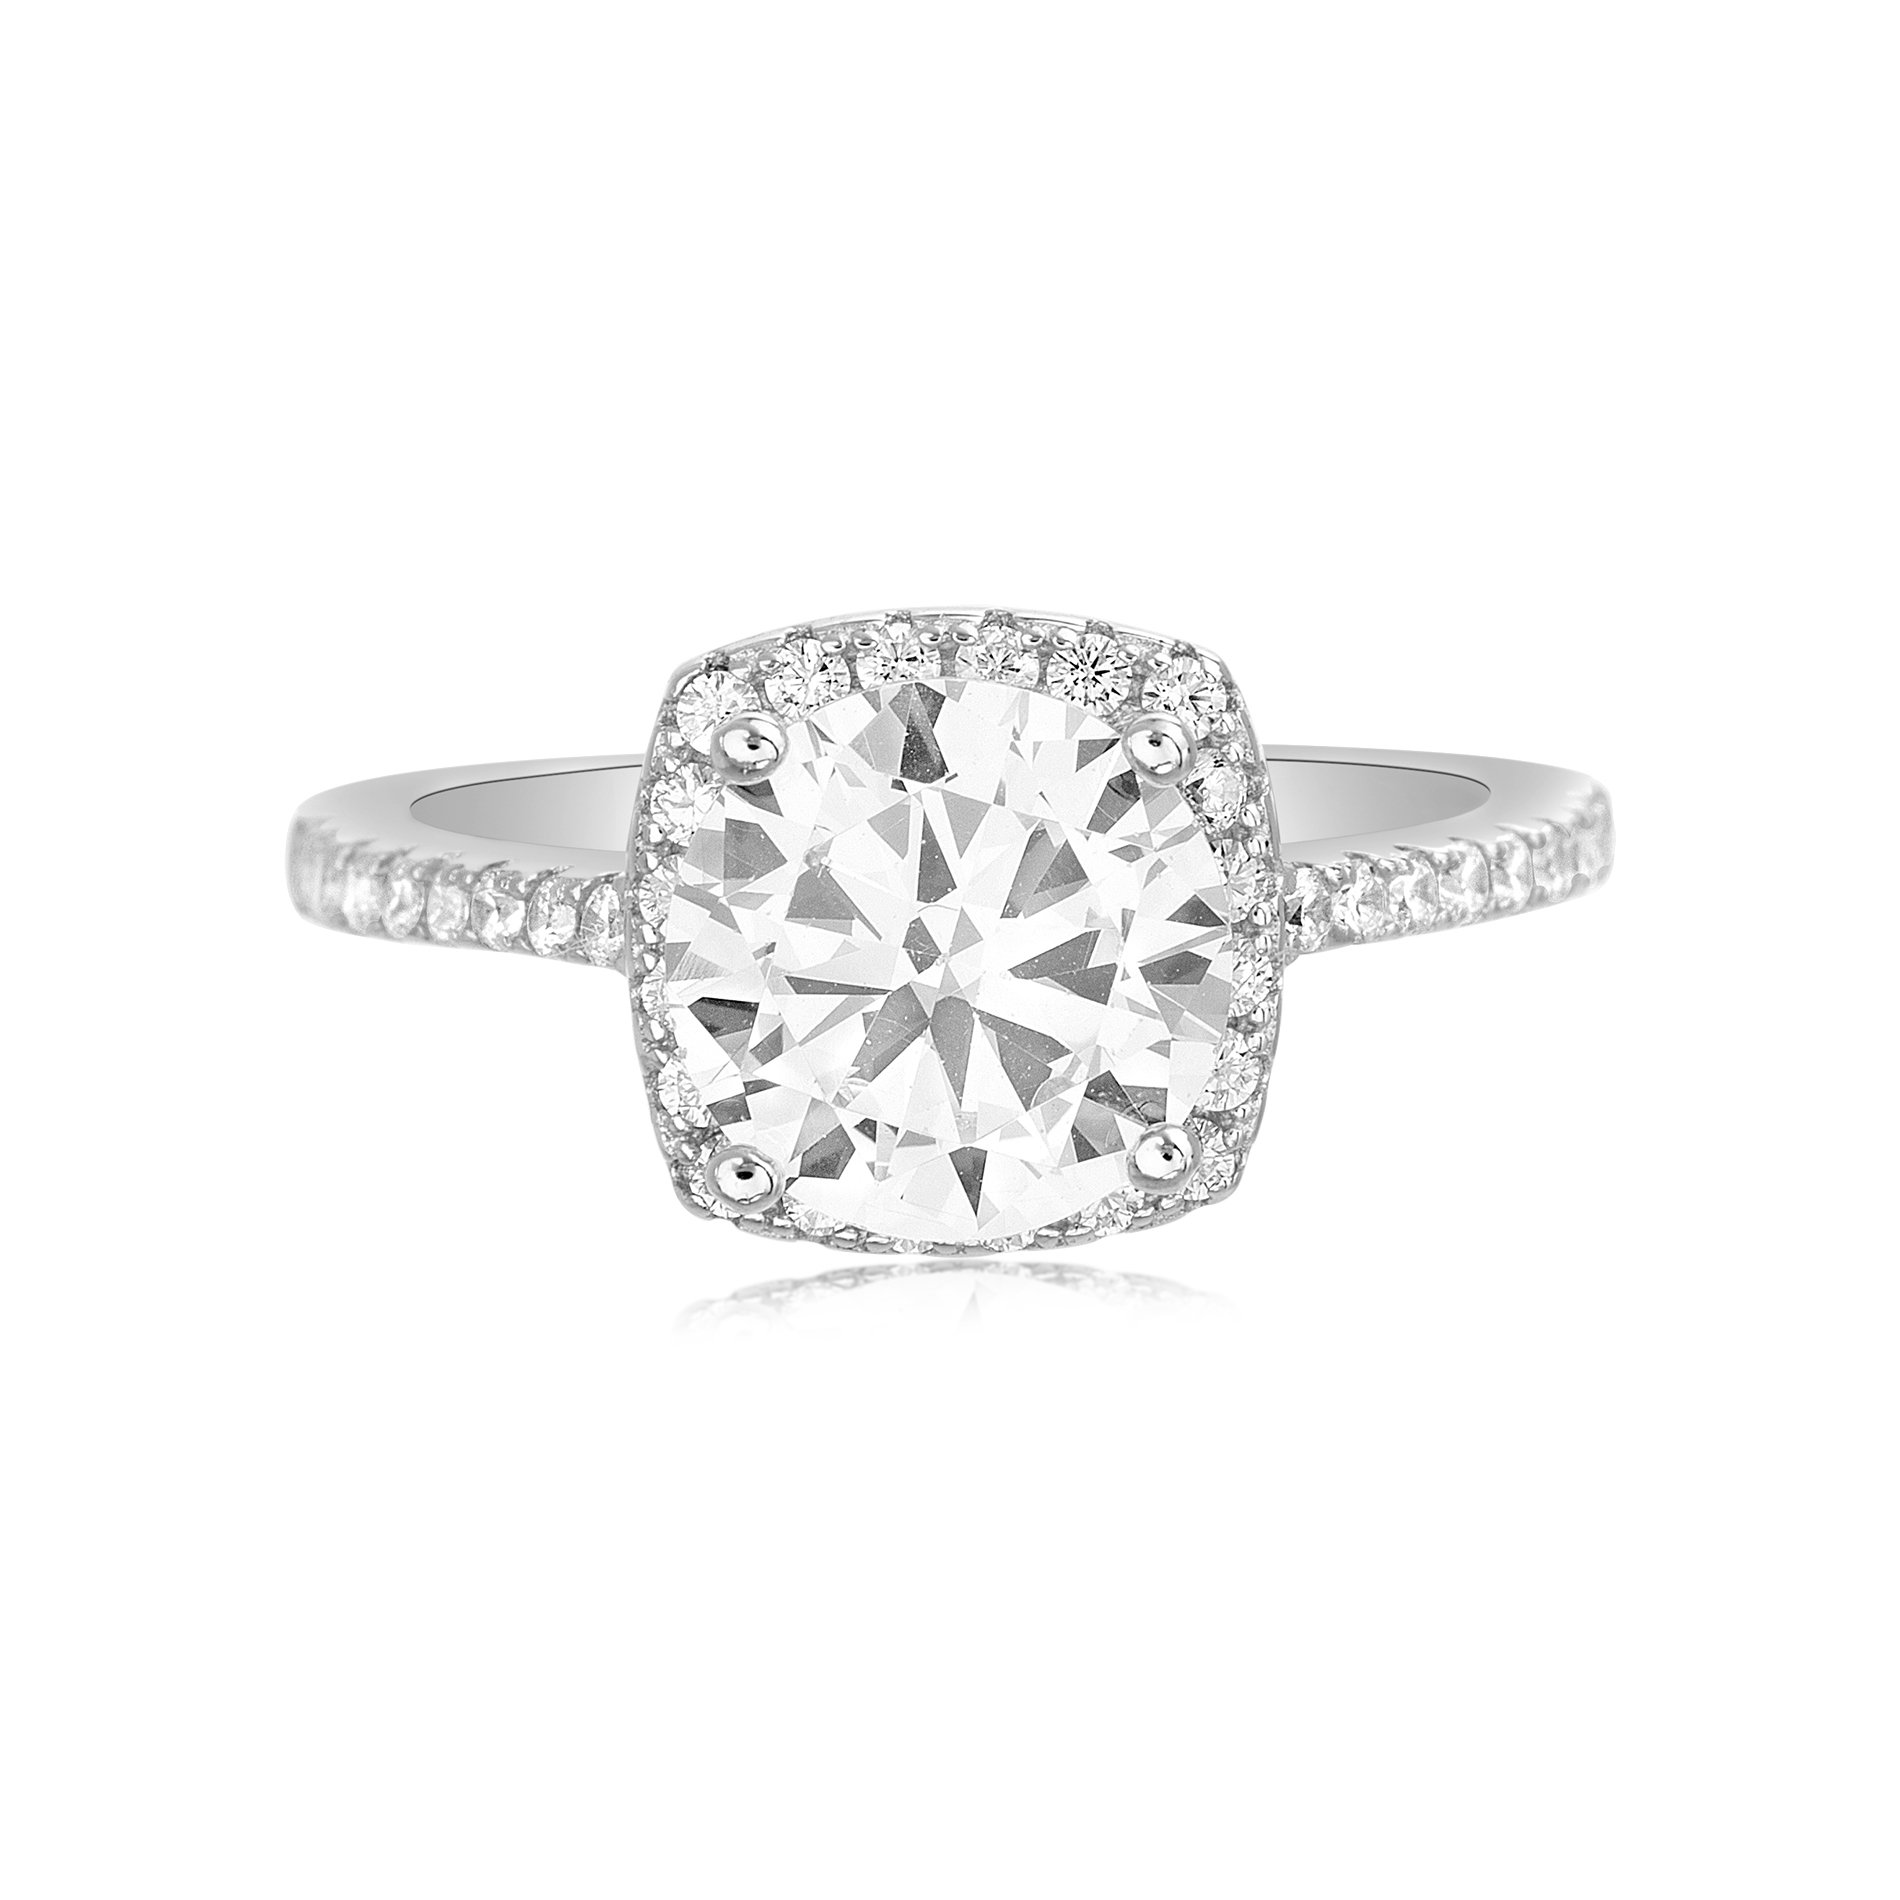 Lesa Michele Women's Round Cubic Zirconia Solitaire with Halo Bridal Engagement Ring in Sterling Silver (Size 6)